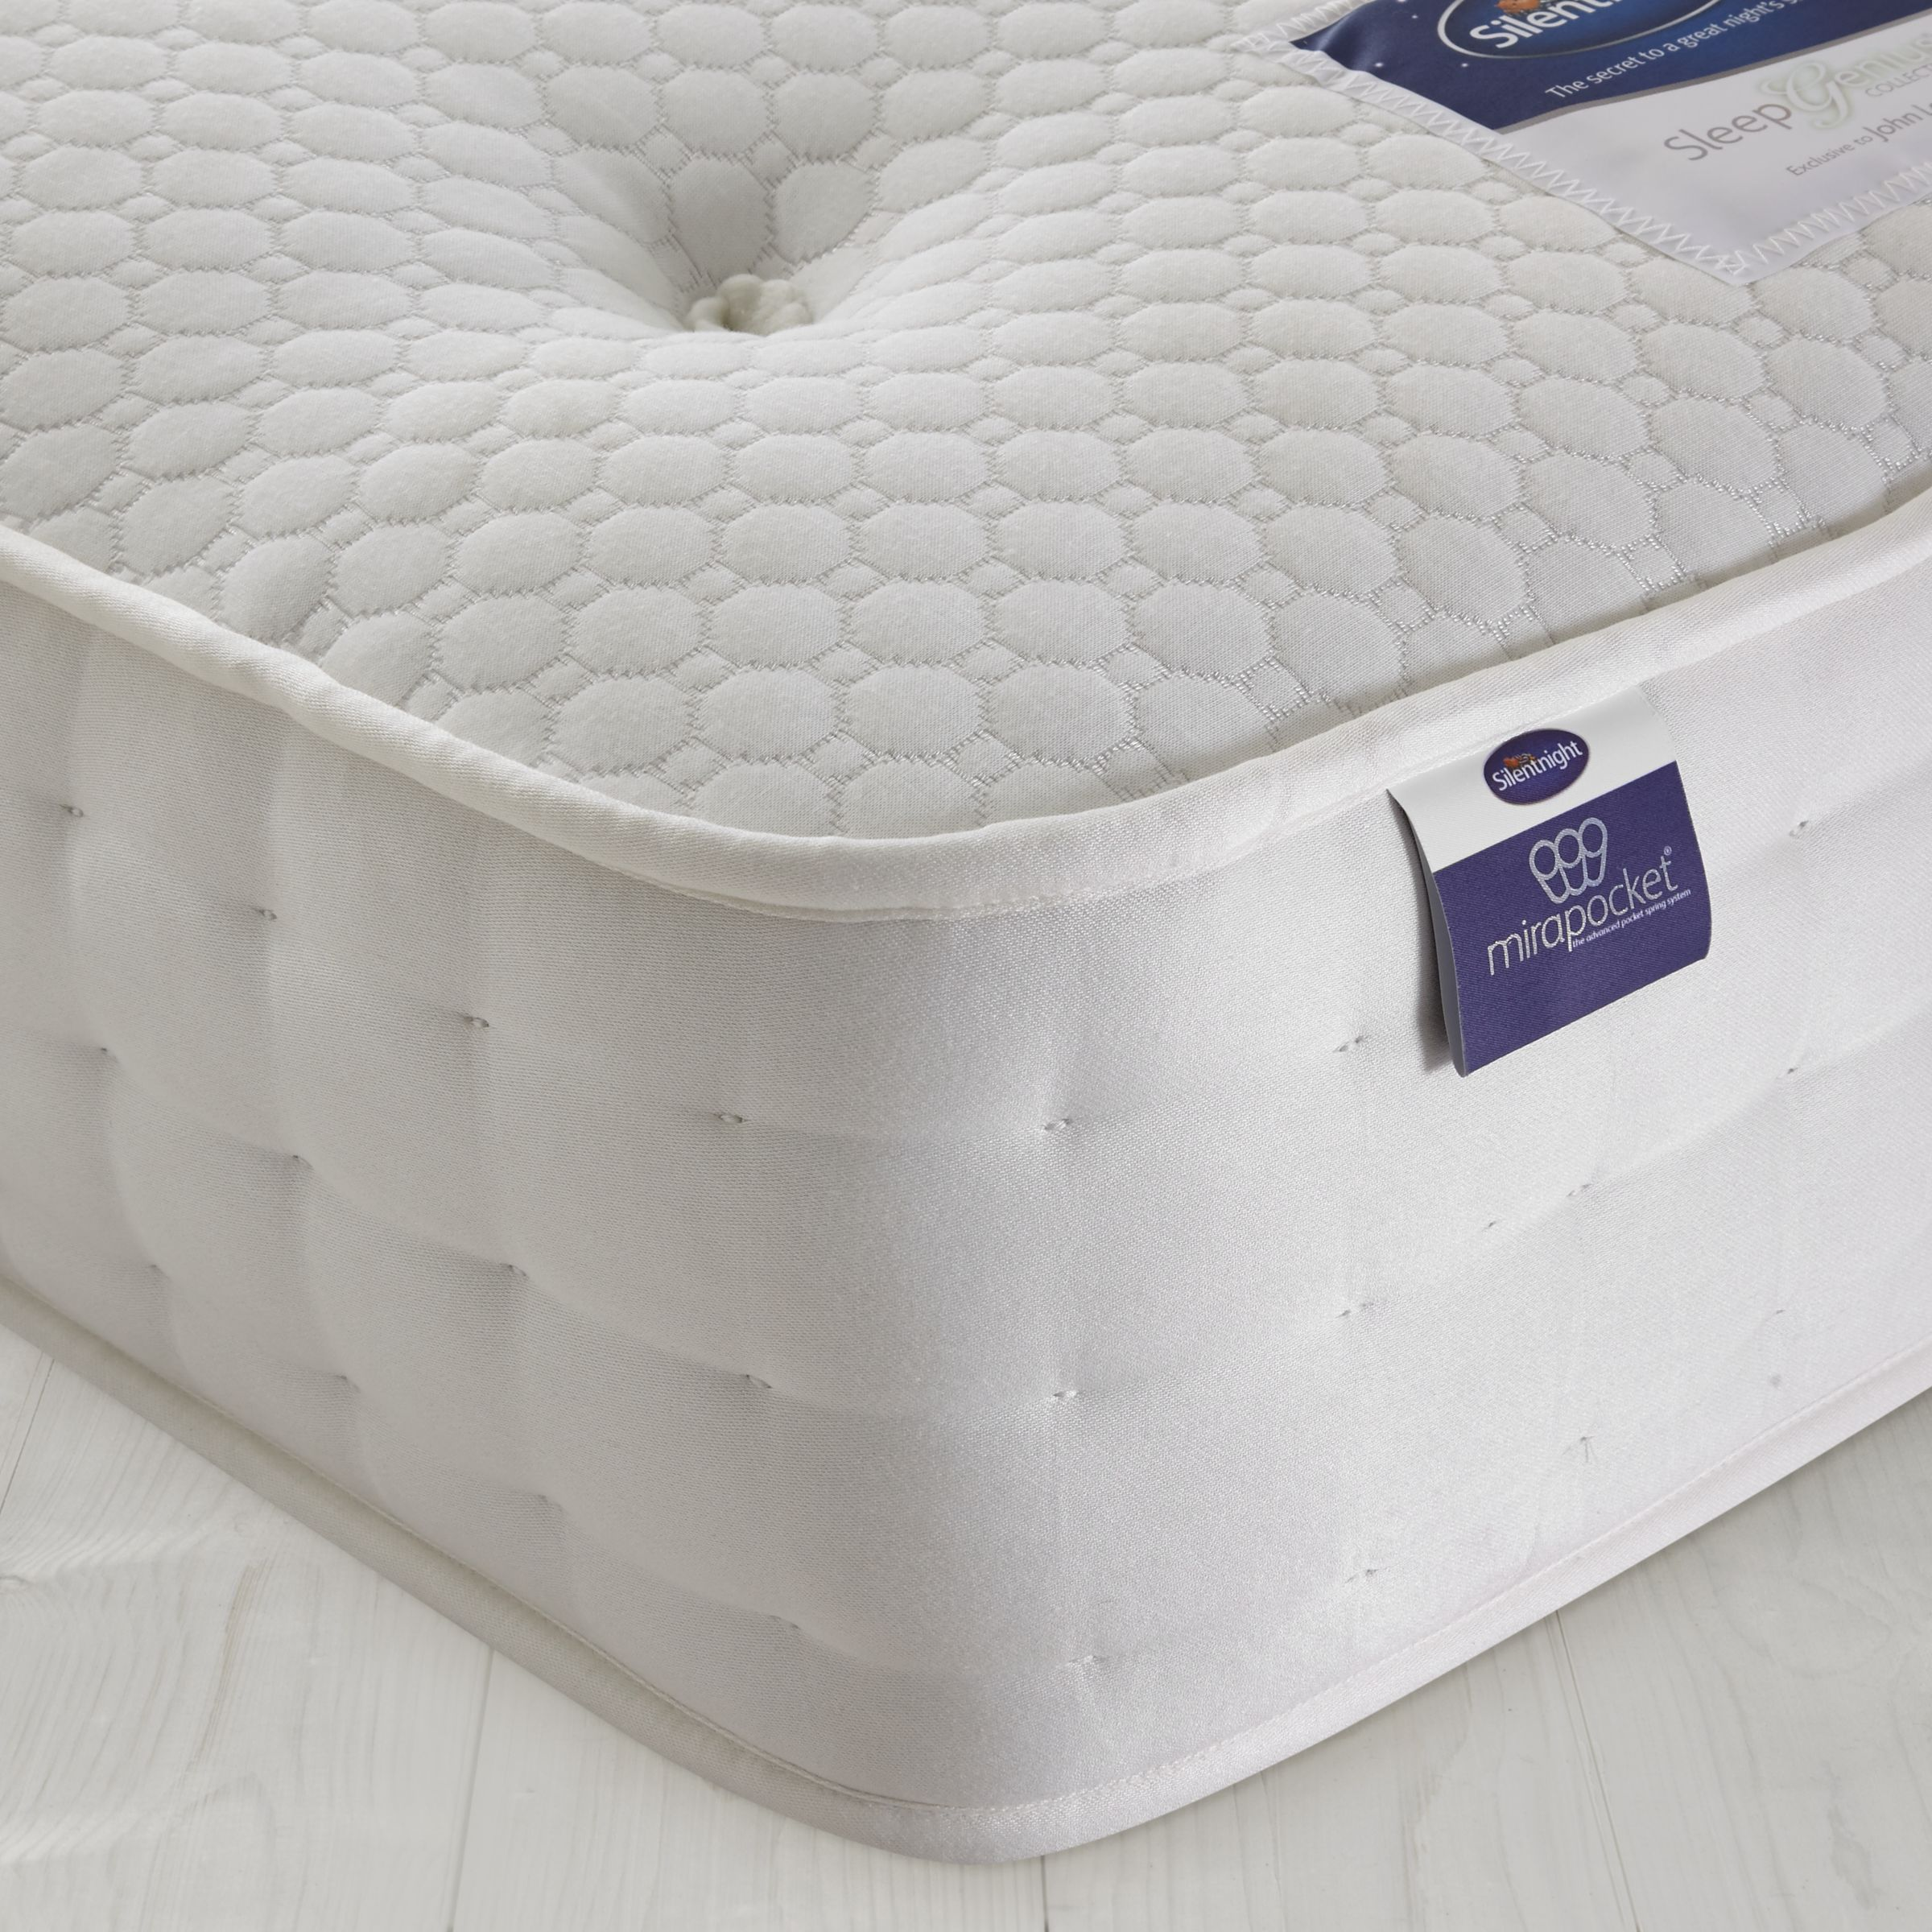 Silentnight Mirapocket 1200 Memory Mattress, Single